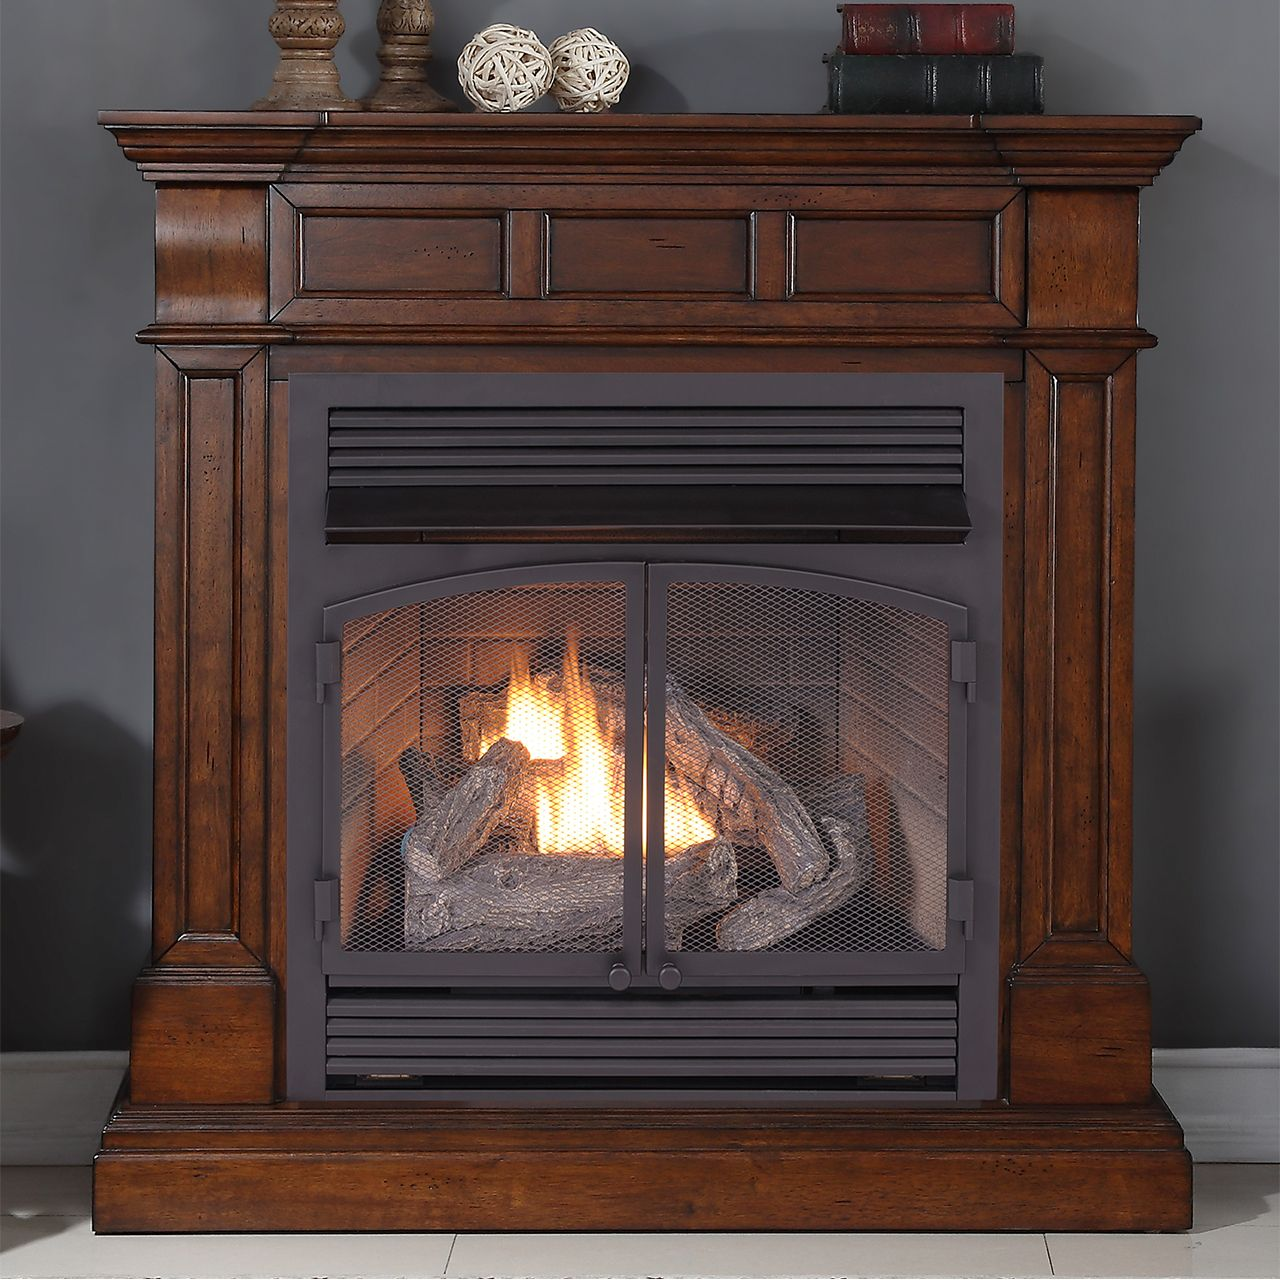 10 Perfect Gas Fireplace Insert Reviews For Your Cozy Home In 2019